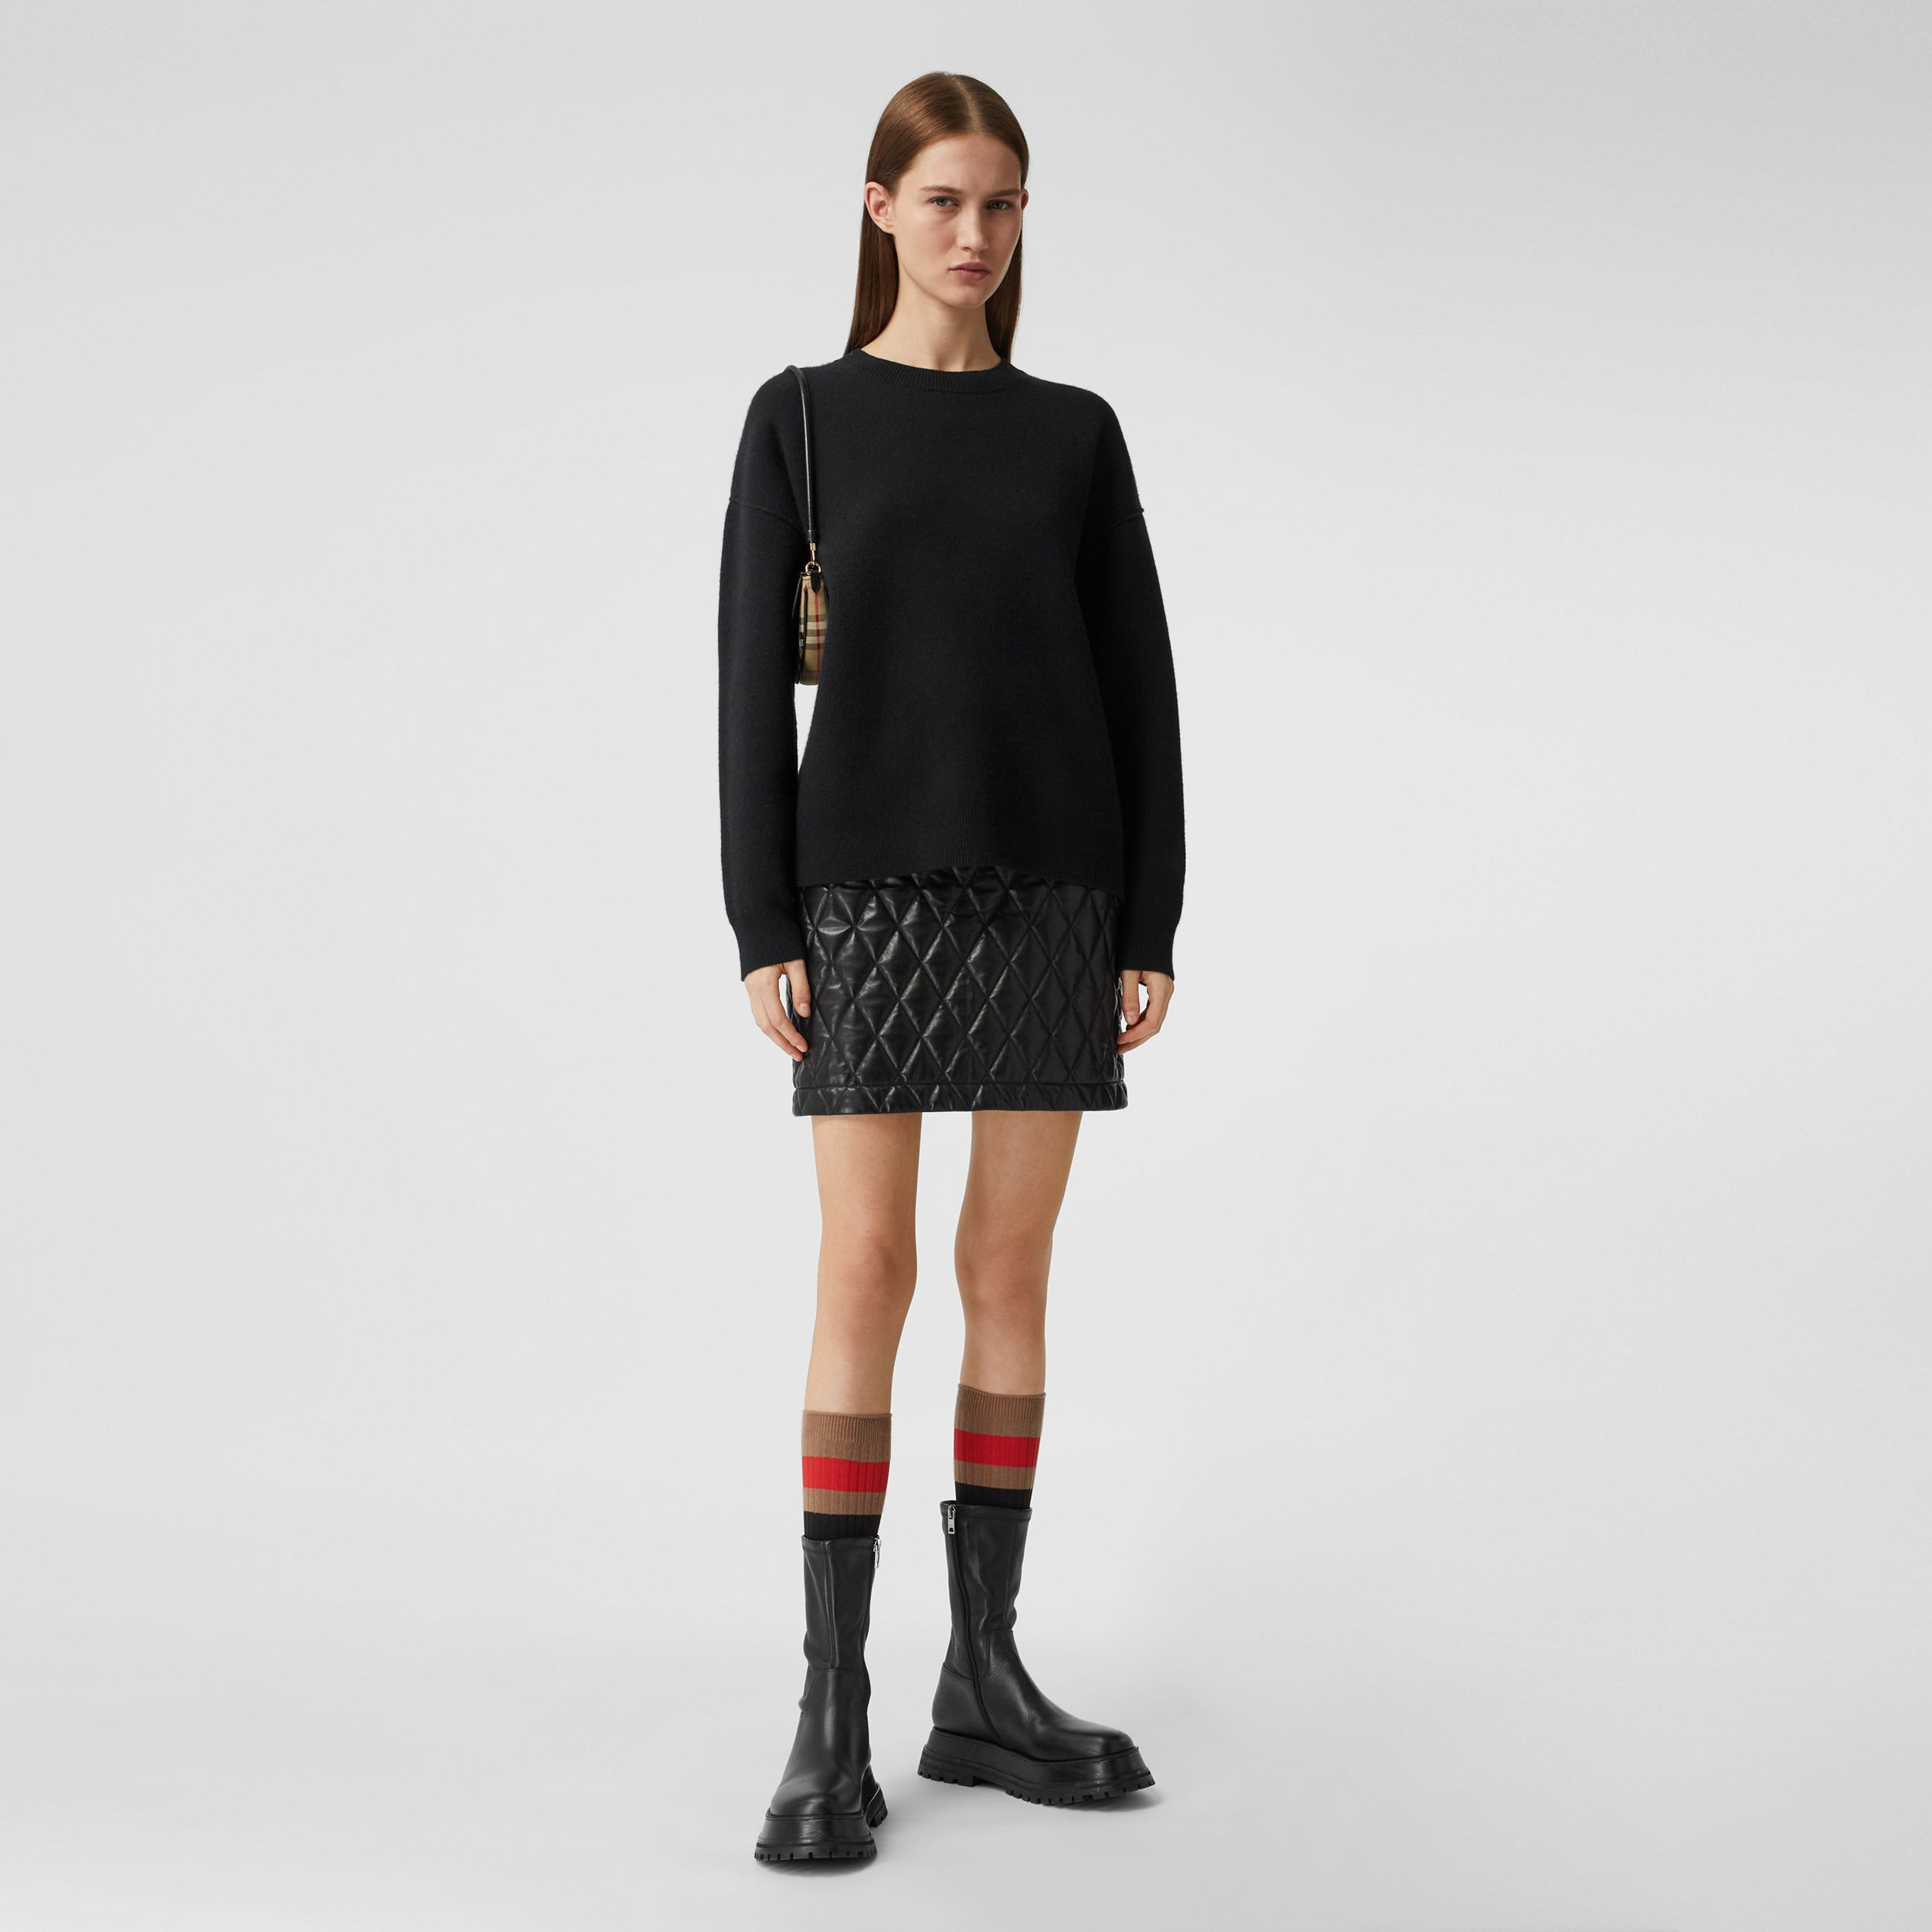 Monogram Motif Cashmere Blend Sweater in Black - Women | Burberry - 1